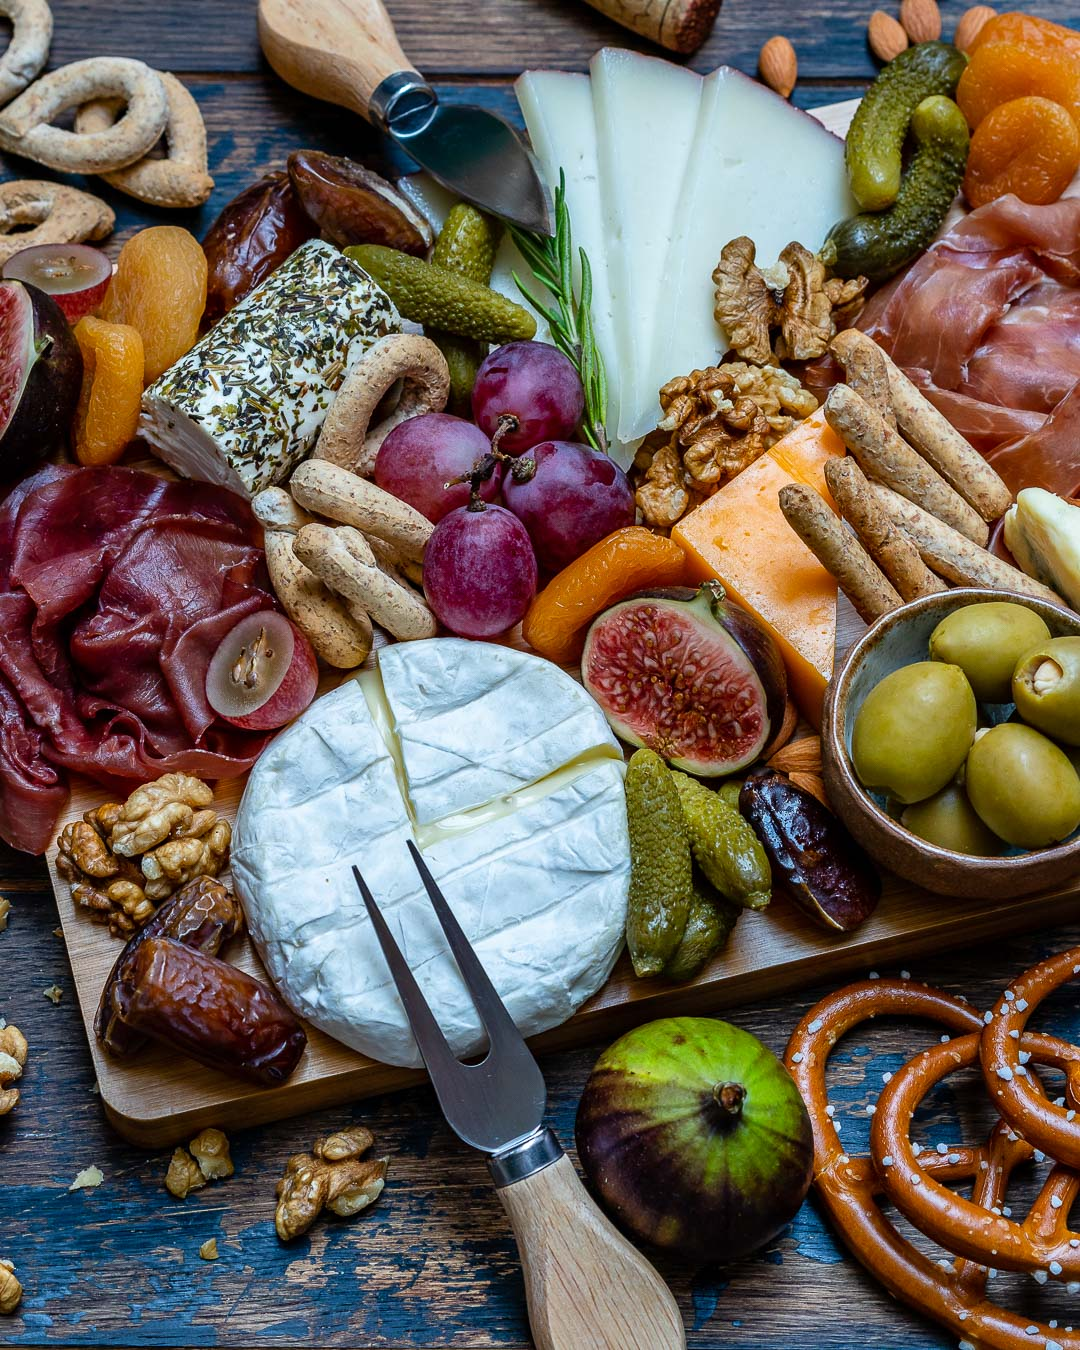 How to Make The Best Charcuterie And Cheese Platter For The Holidays-10